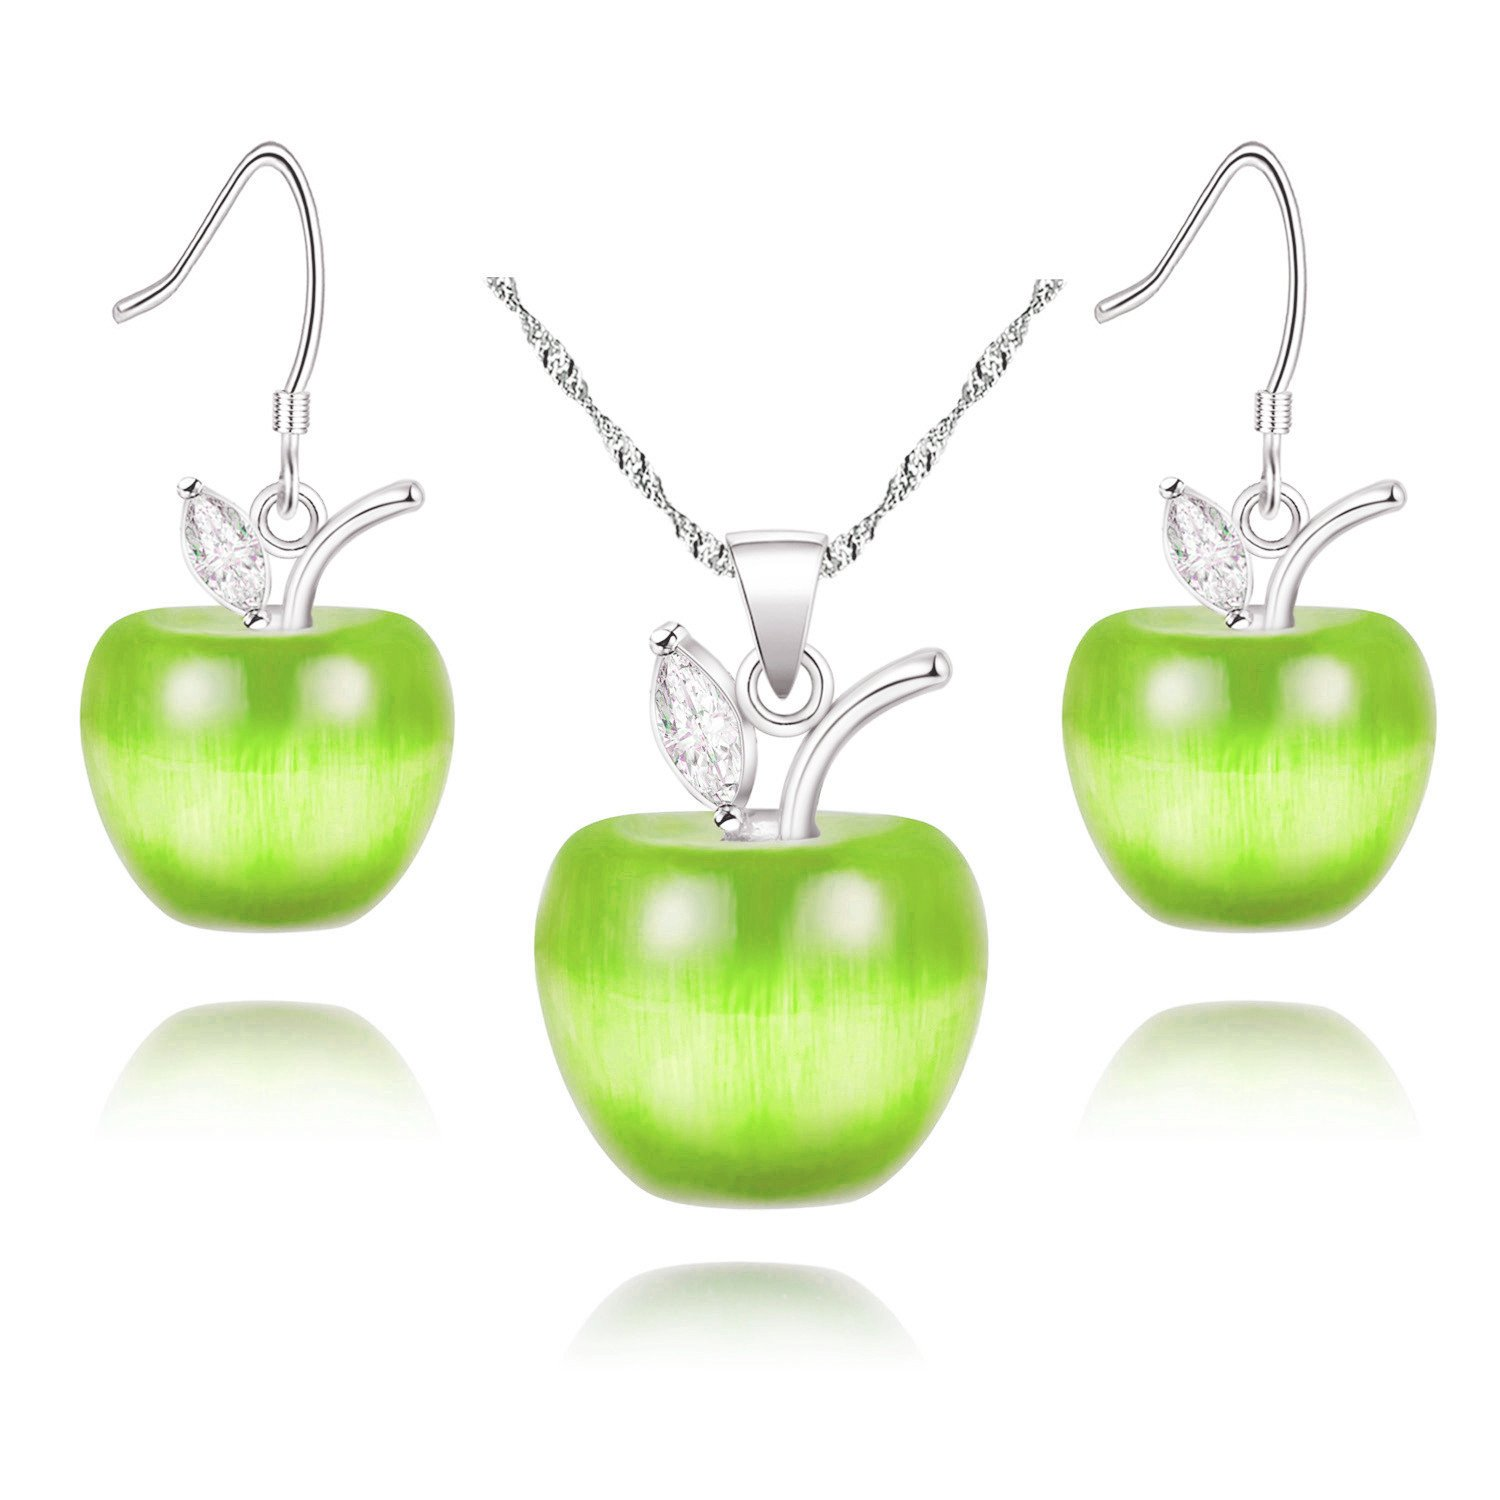 Uloveido Teacher's Day Gift Silver Plated Candy Green Apple Cubic Zirconia Pendant Green Necklace Earrings Jewelry Set for Women YL007-SET